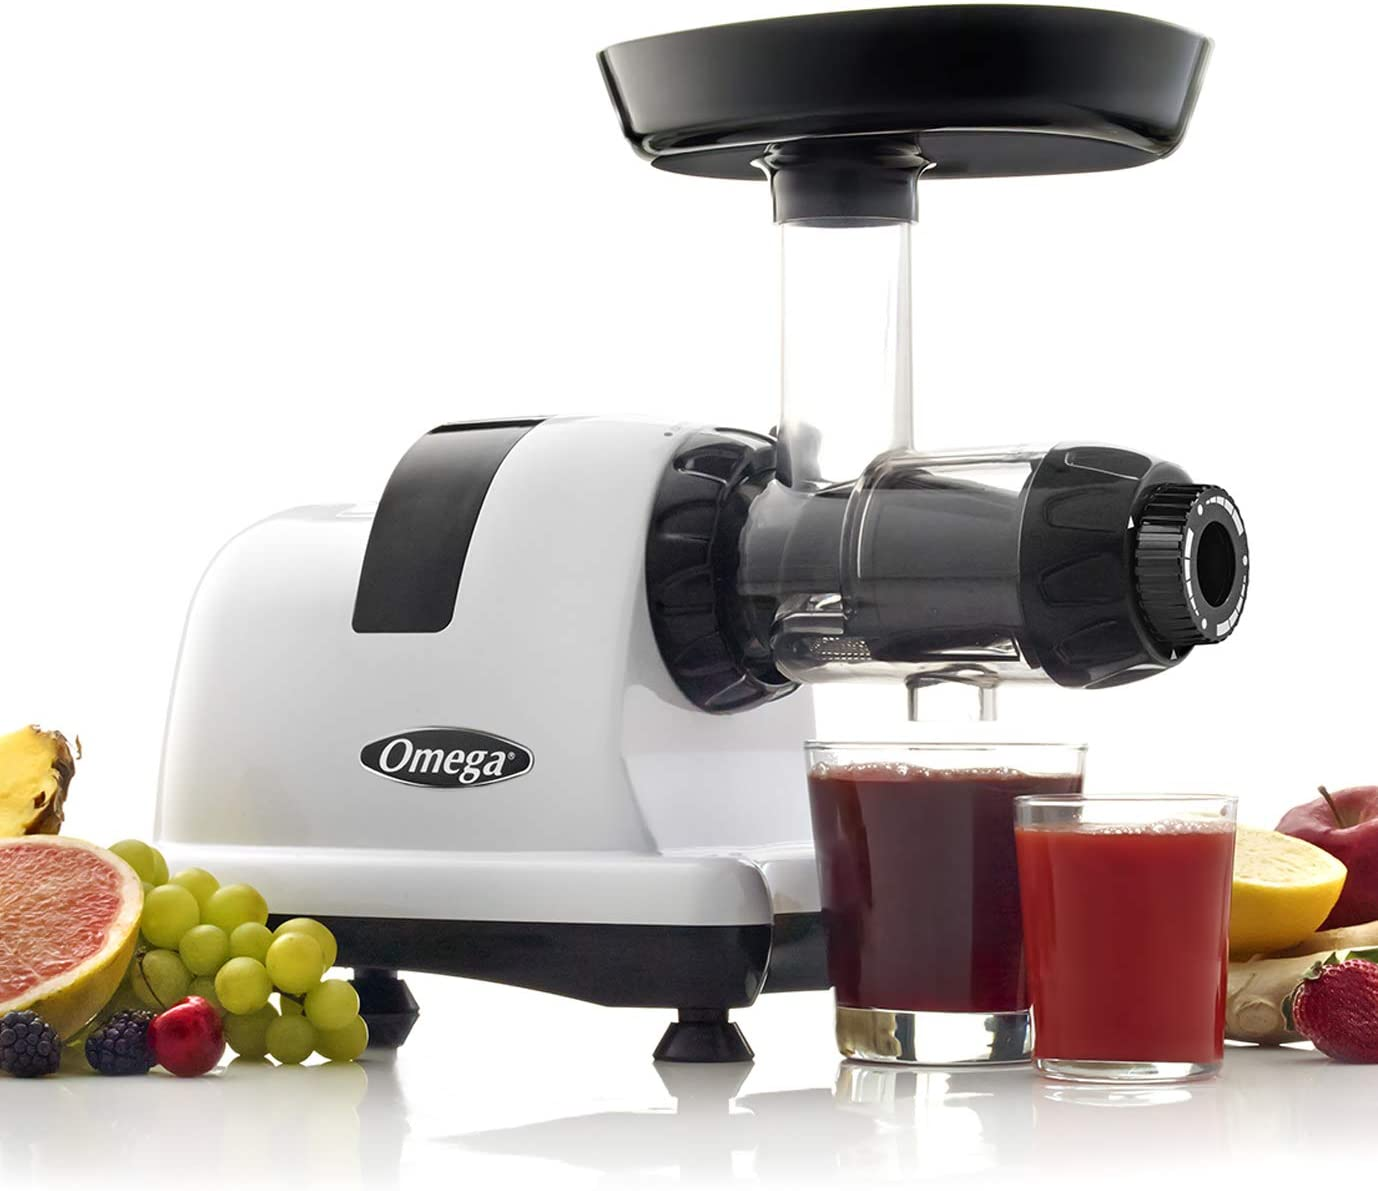 Best Masticating Juicer for Home Use of 2021